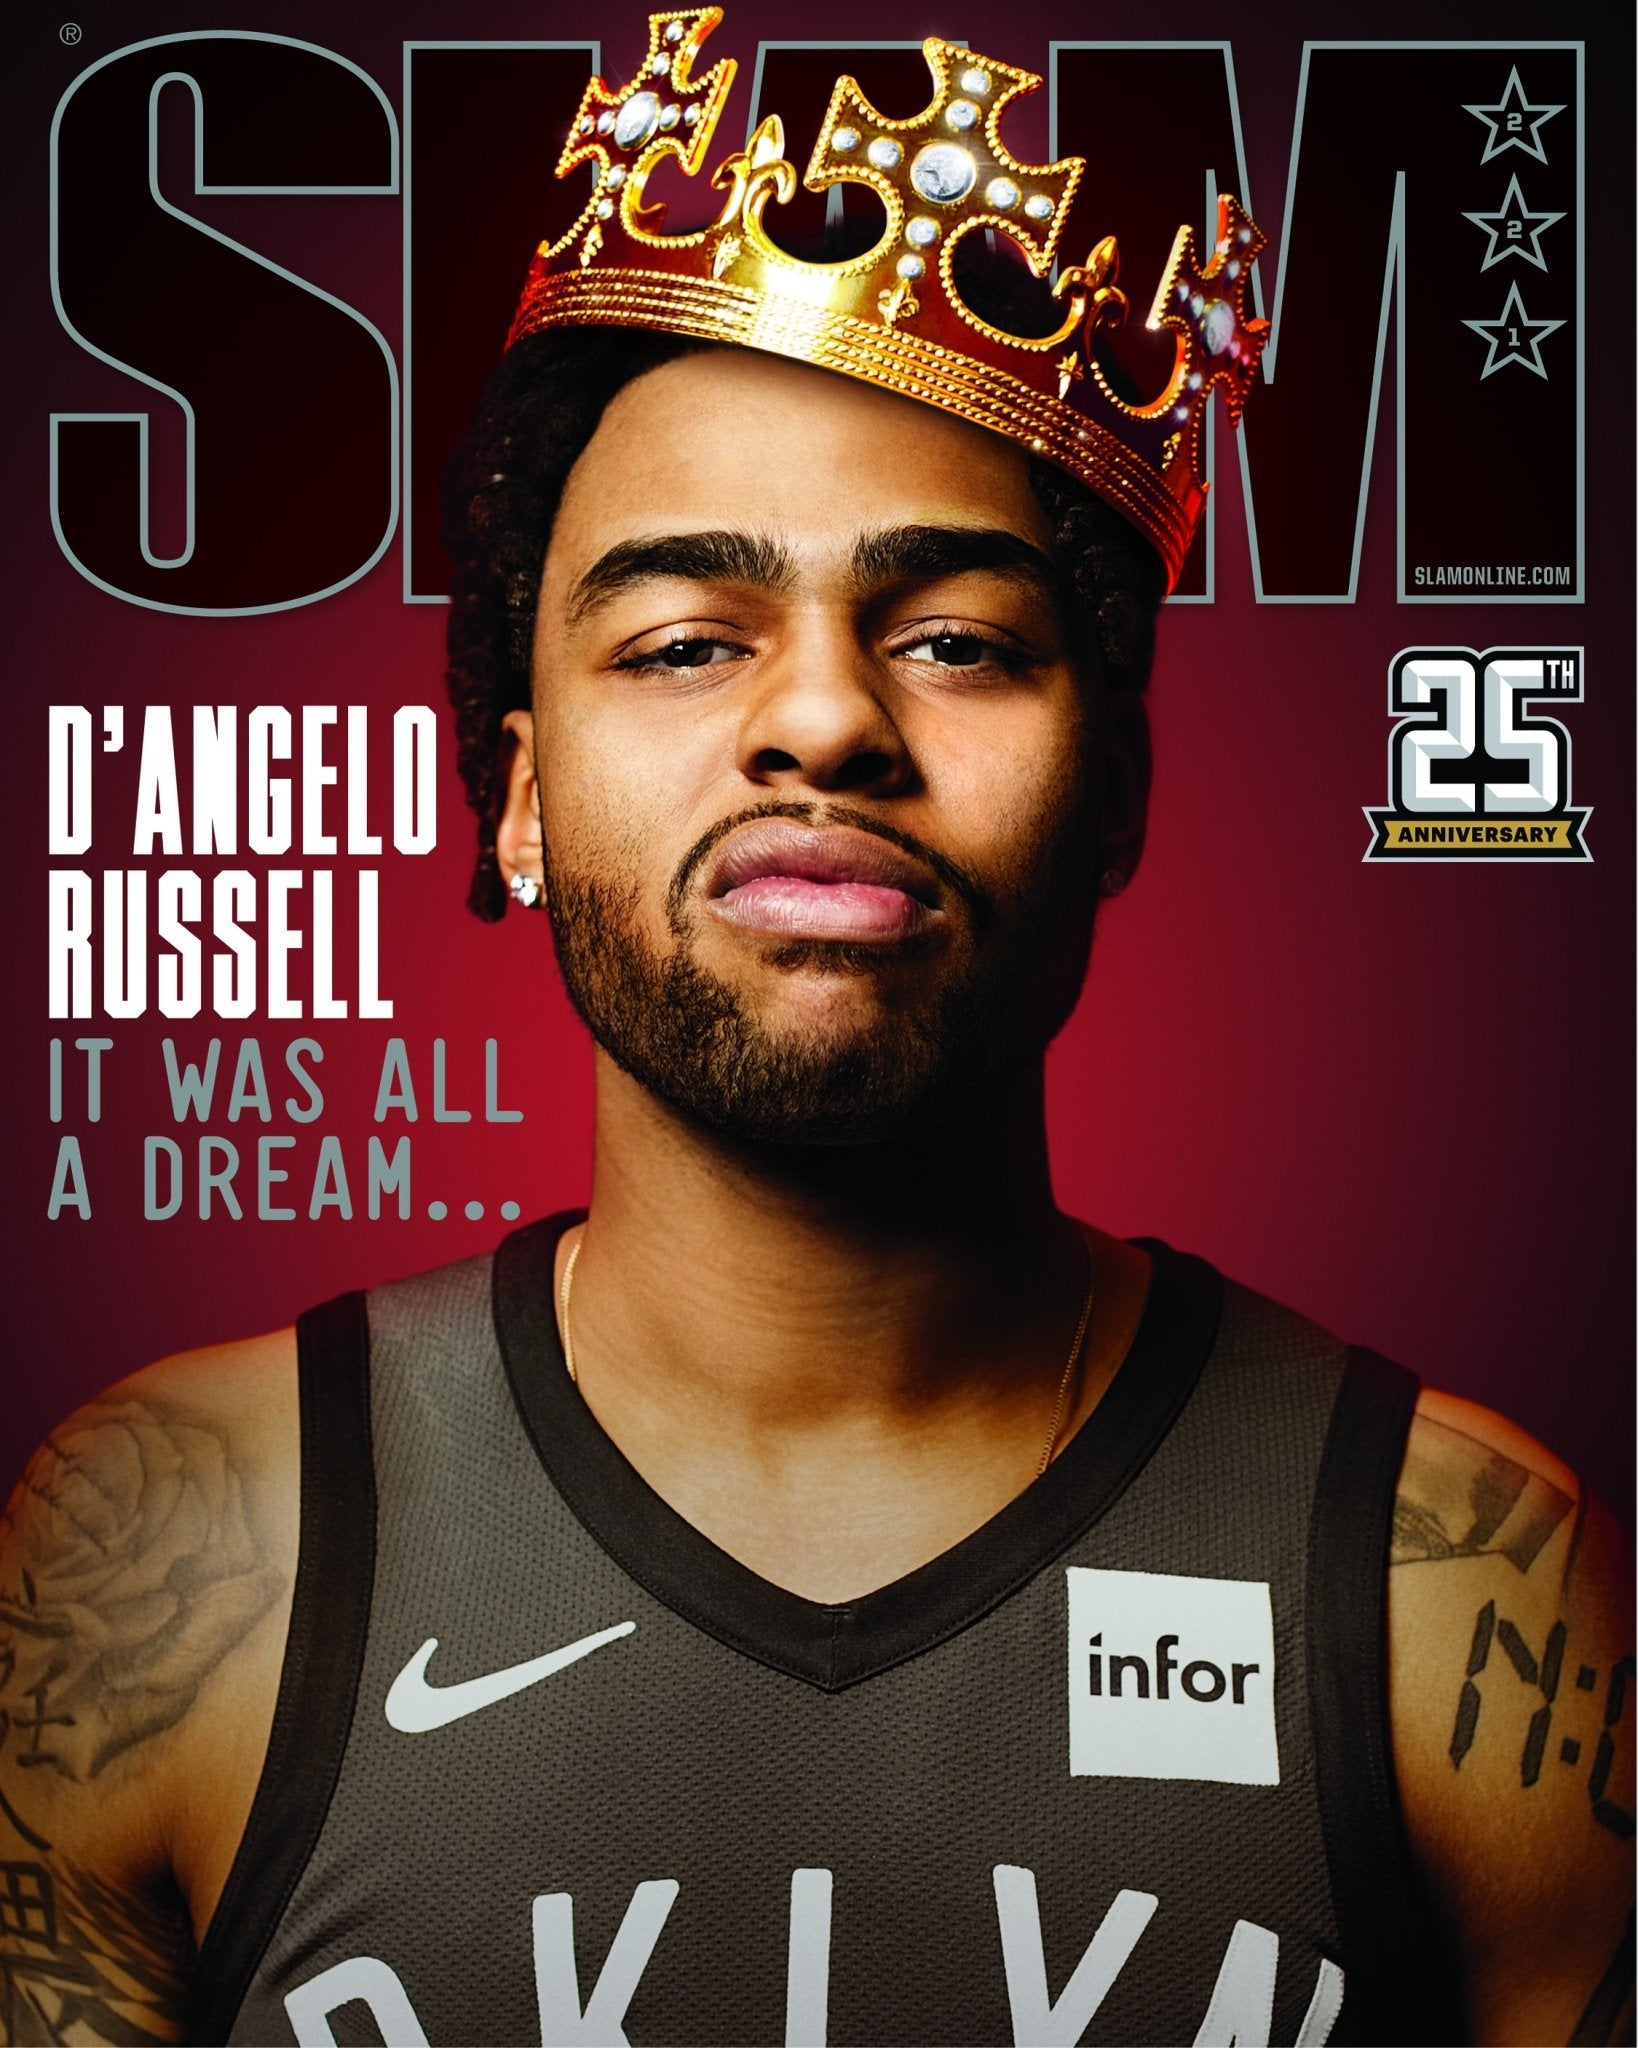 SLAM May/June 2019 (D'Angelo Russell-221) - SLAM